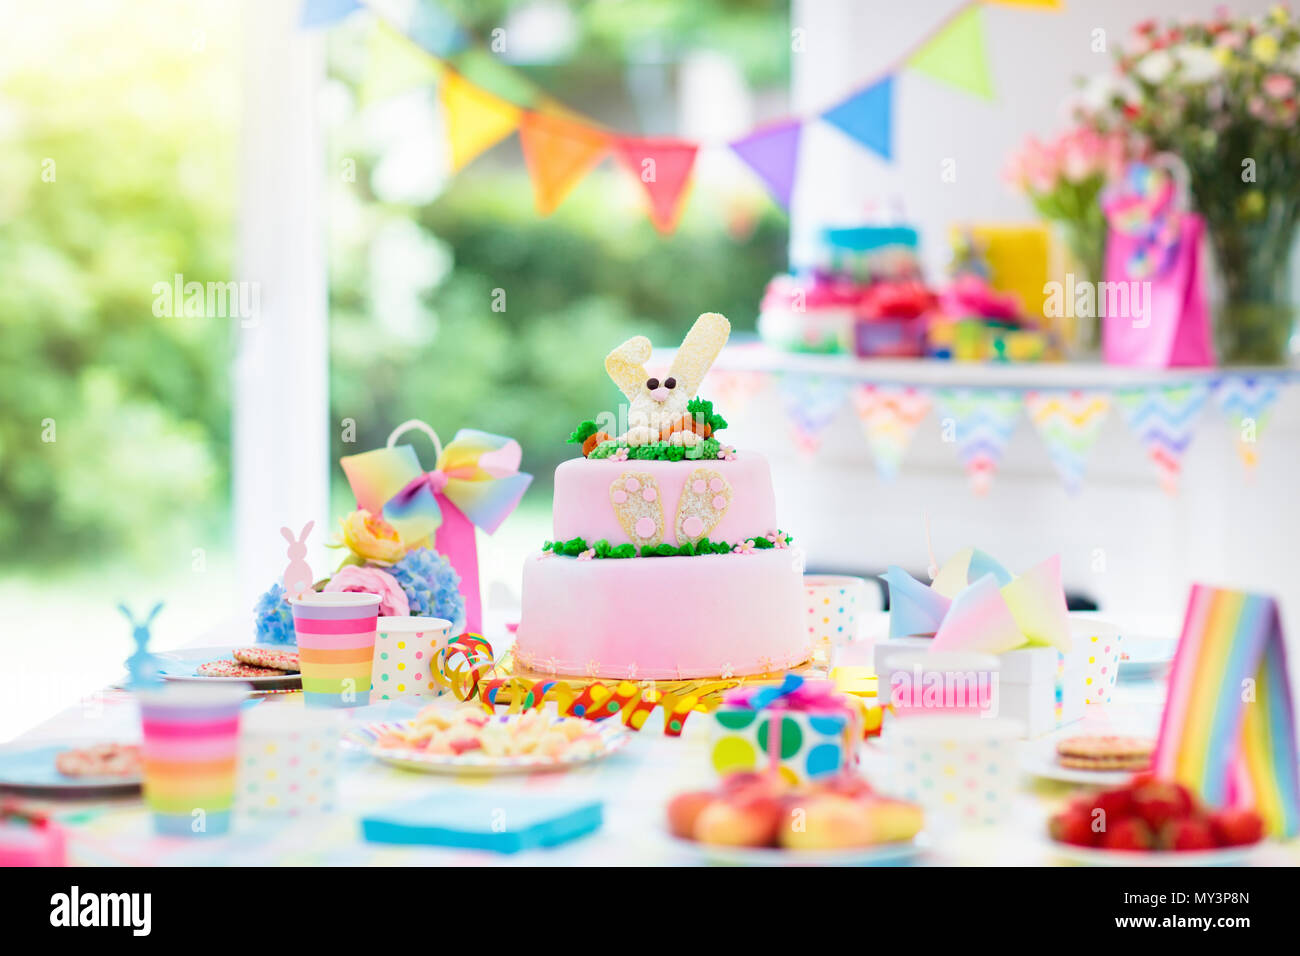 Kids Birthday Party Decoration And Cake Decorated Table For Child